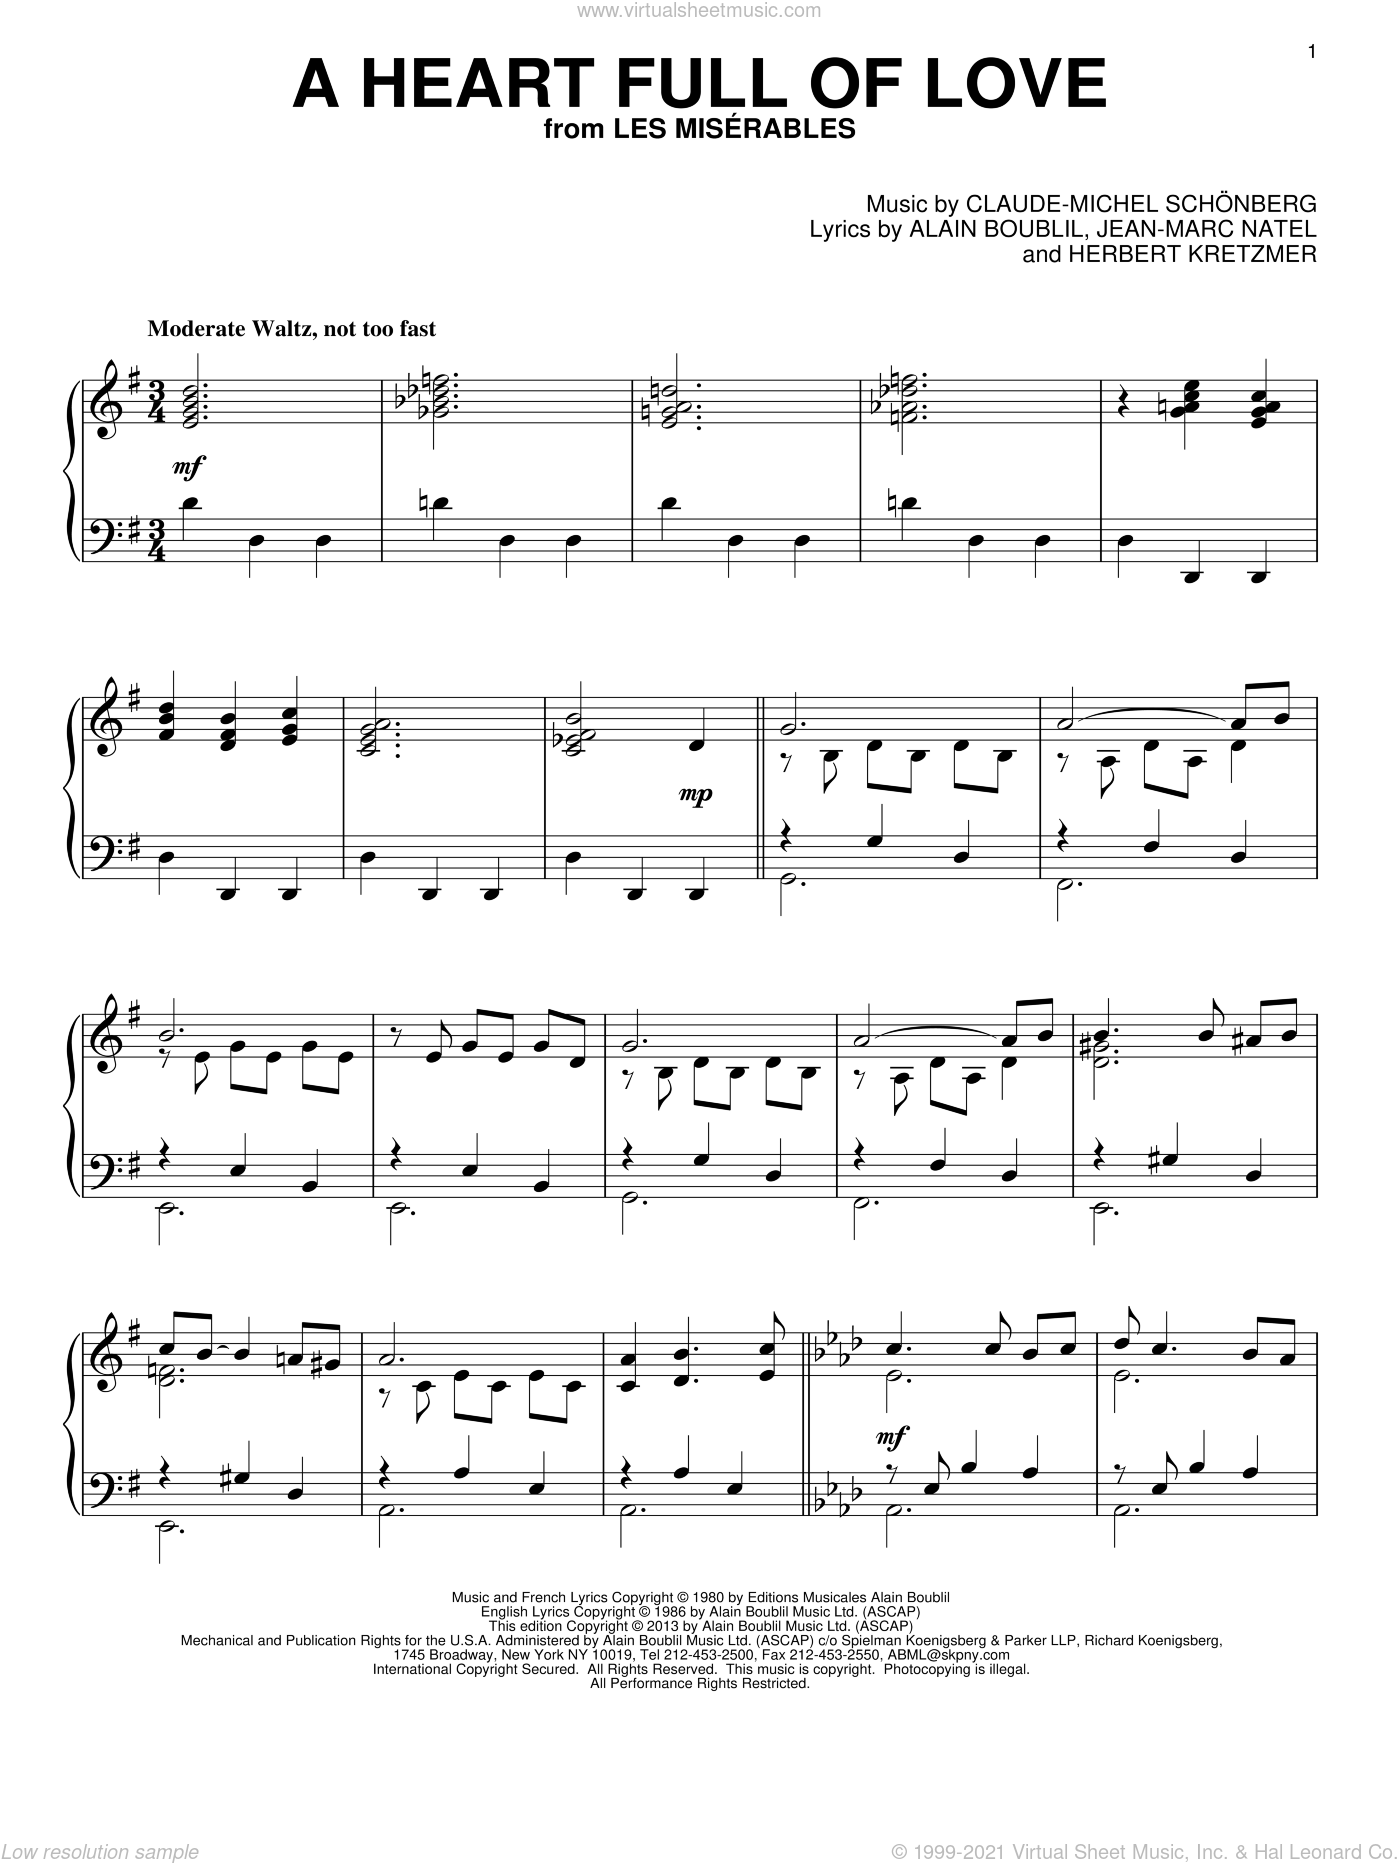 A Heart Full Of Love sheet music for piano solo by Les Miserables (Musical), Alain Boublil and Claude-Michel Schonberg, intermediate